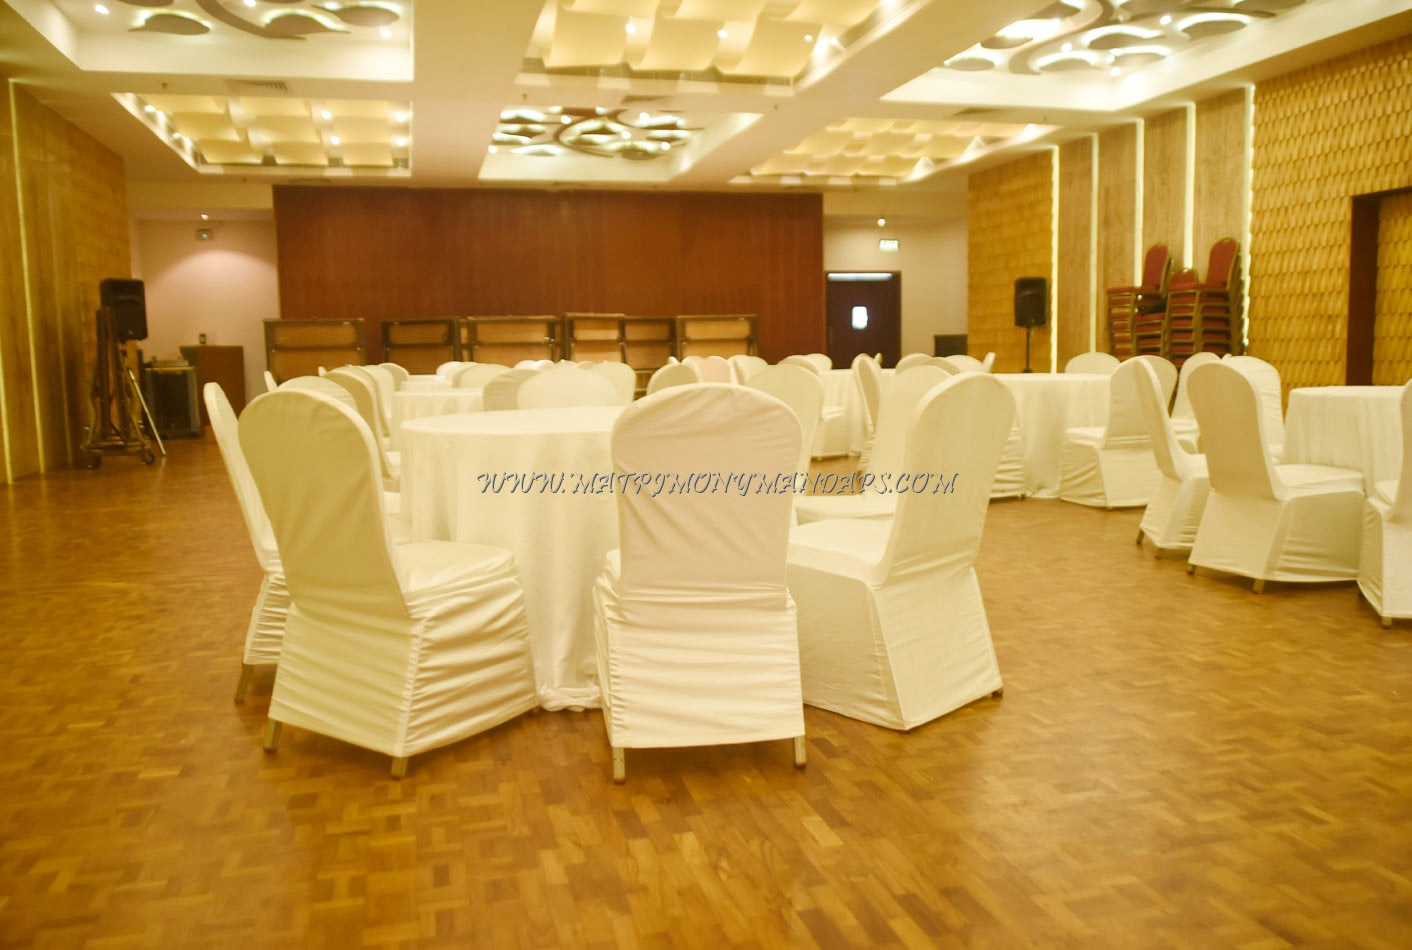 Find the availability of the Ramada Resort Cochin - Royal Club Hall (A/C) in Panangad, Kochi and avail special offers